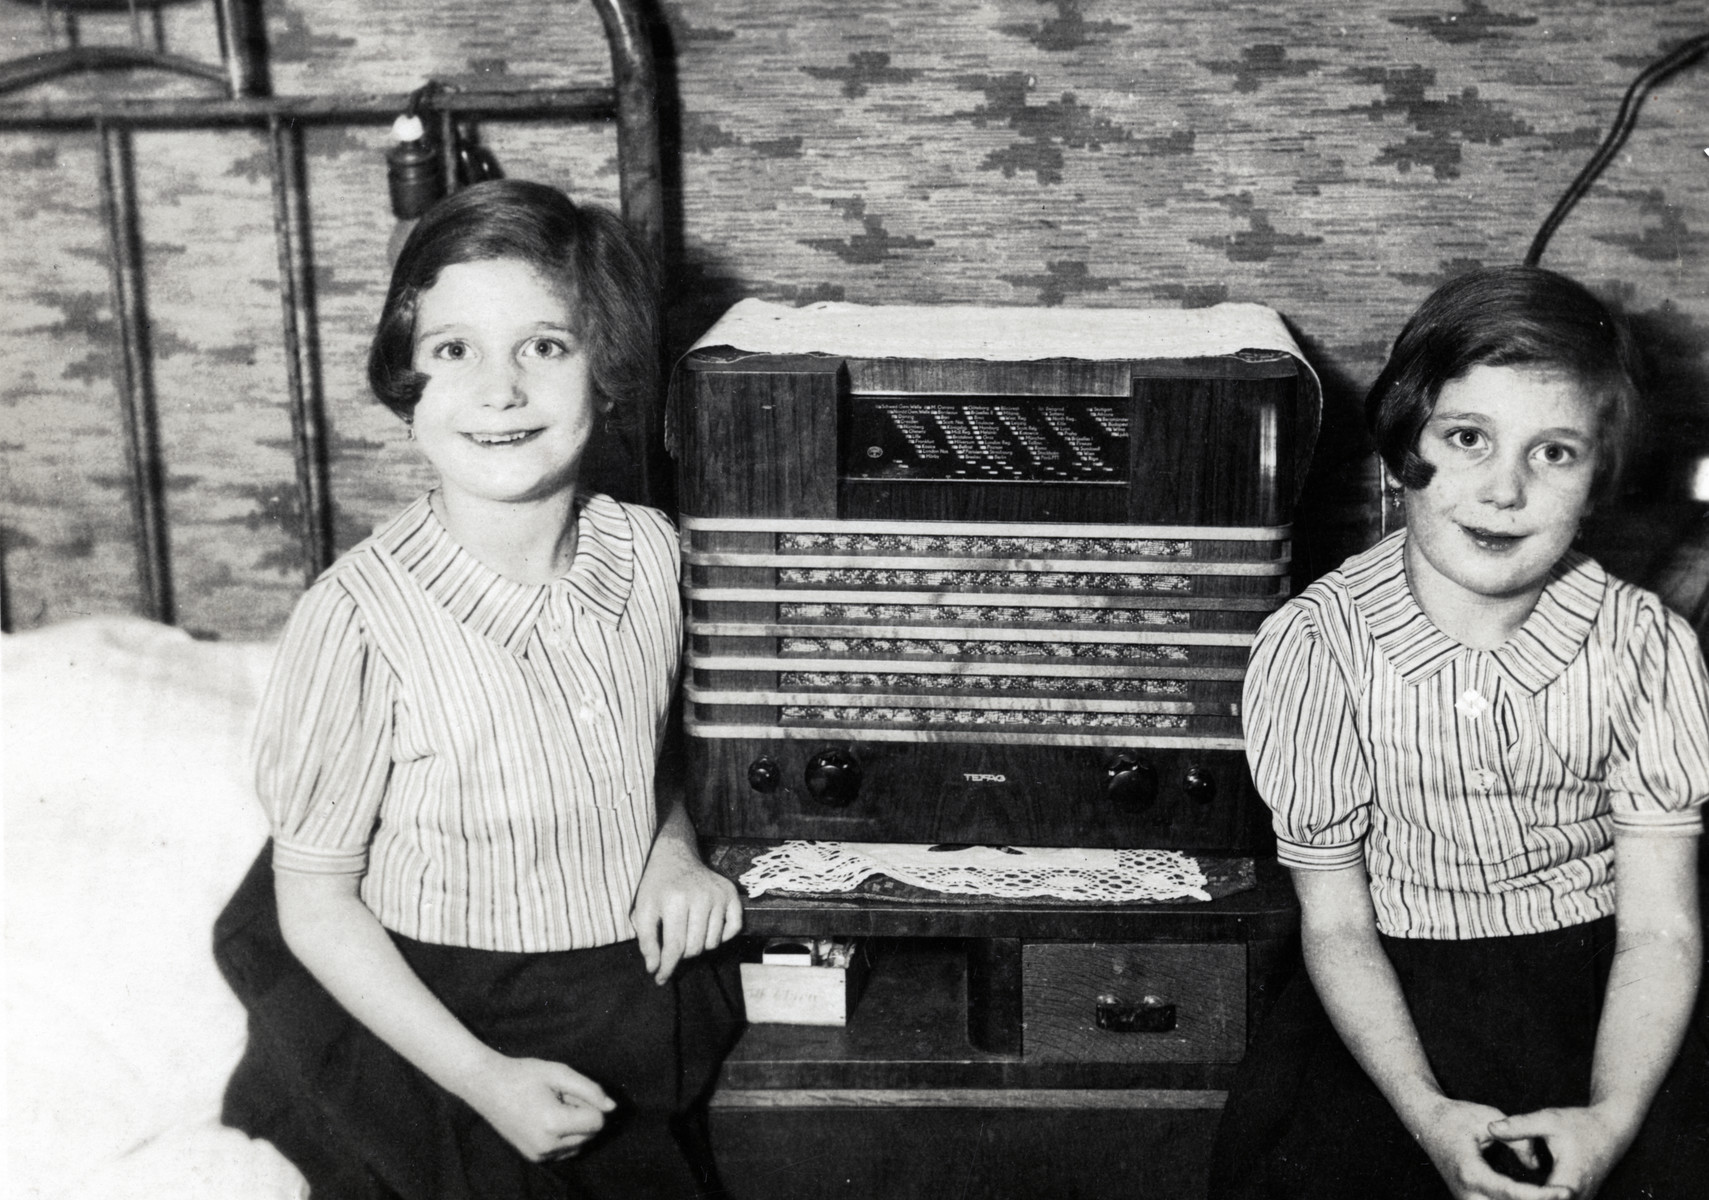 Twins Regina and Ruth Anders sit at home next to their radio.